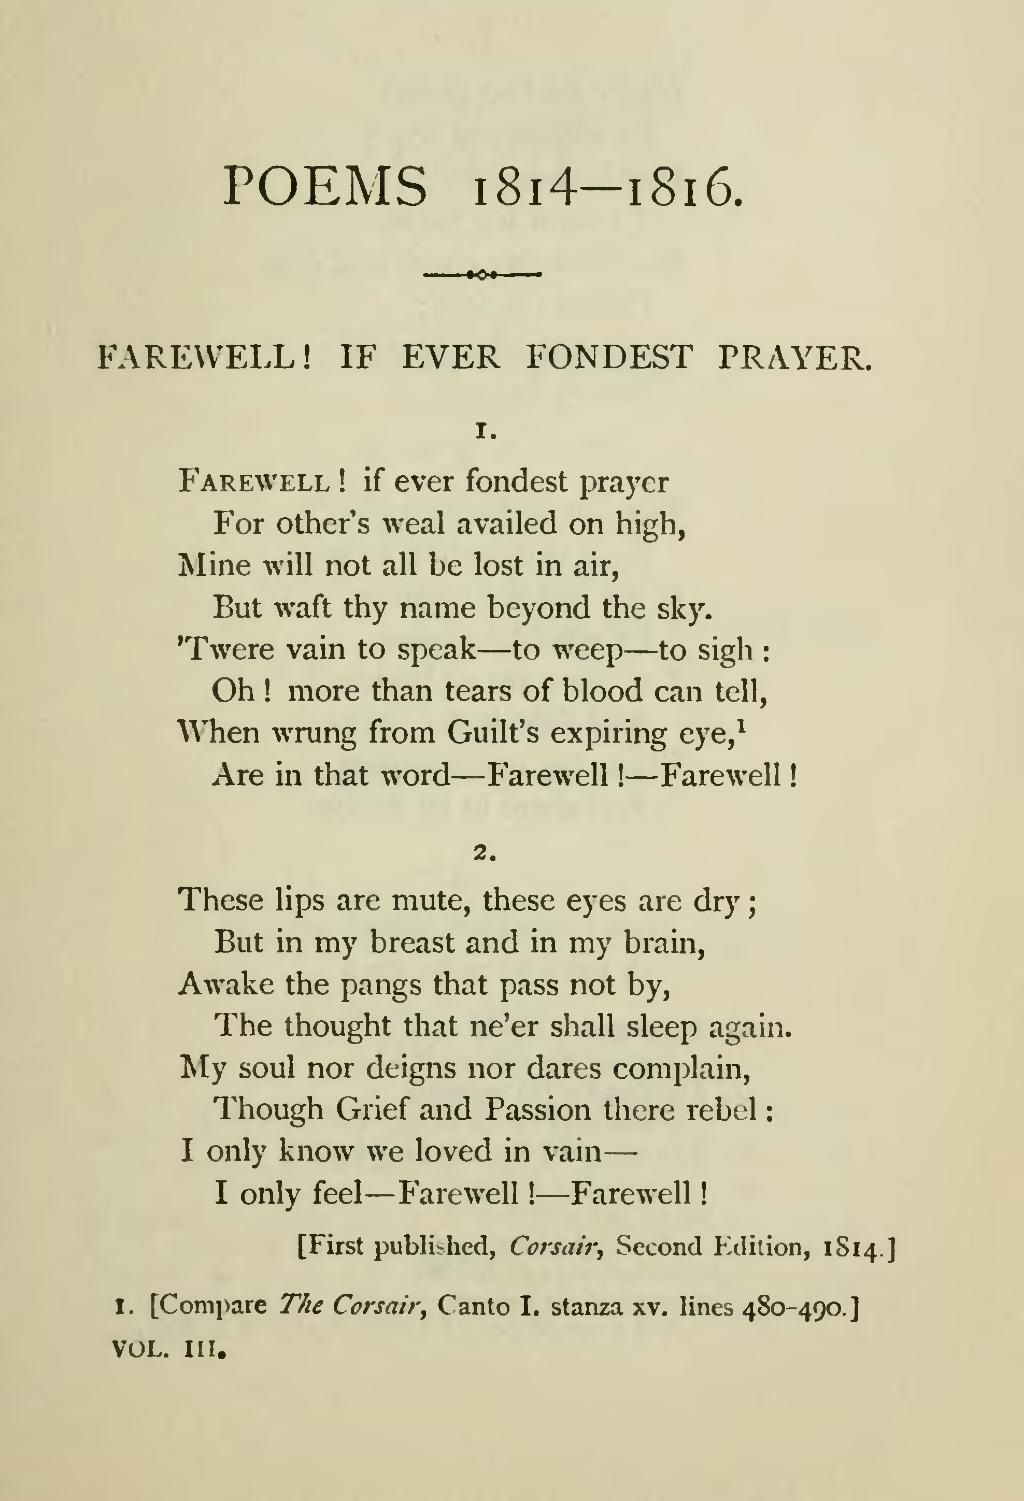 One Of My Favourite Poem 3 Lord Byron Poetry Inspiration Love Mutability William Wordsworth Summary Analysi